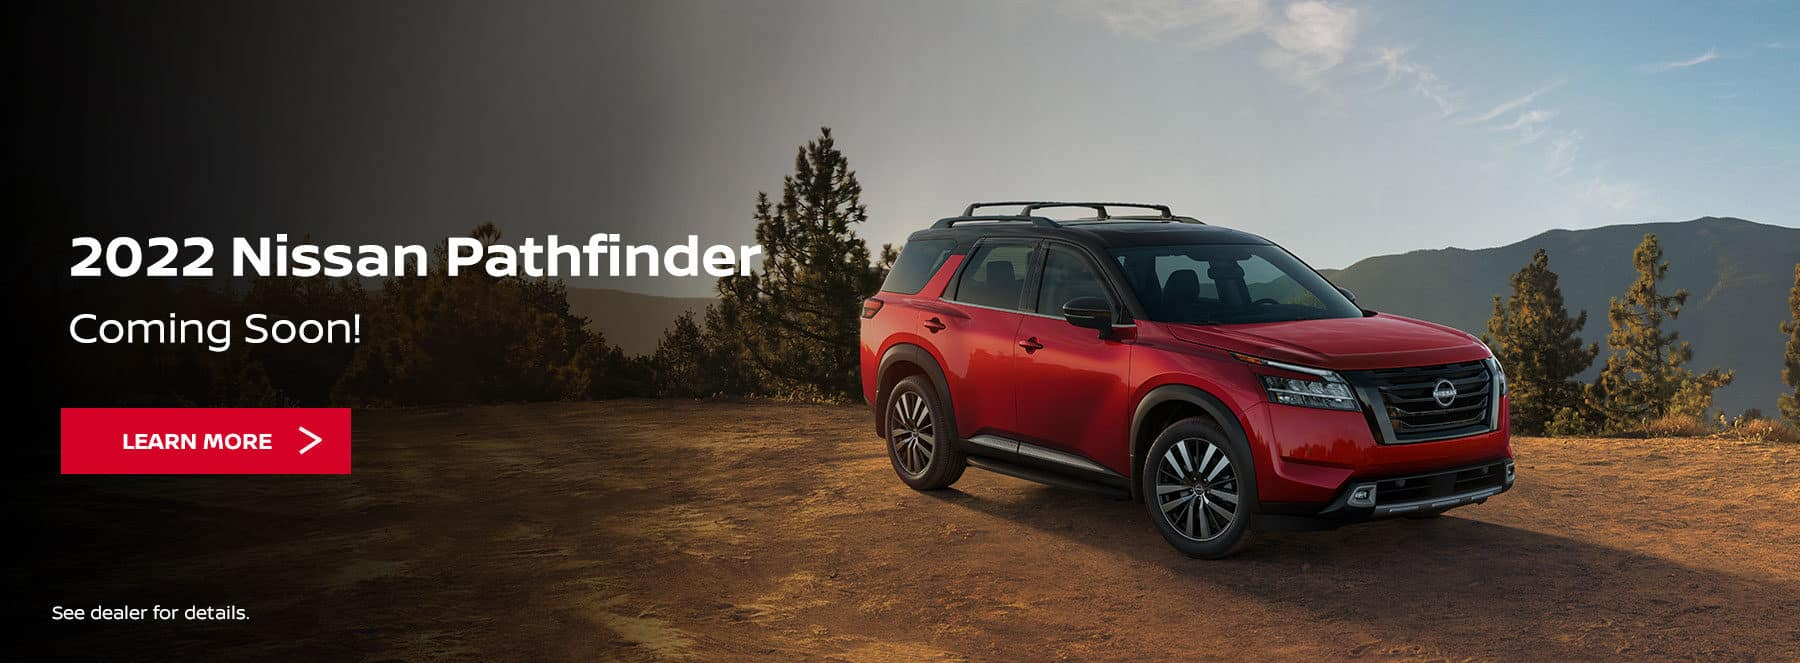 The 2022 Nissan Pathfinder Coming Soon!